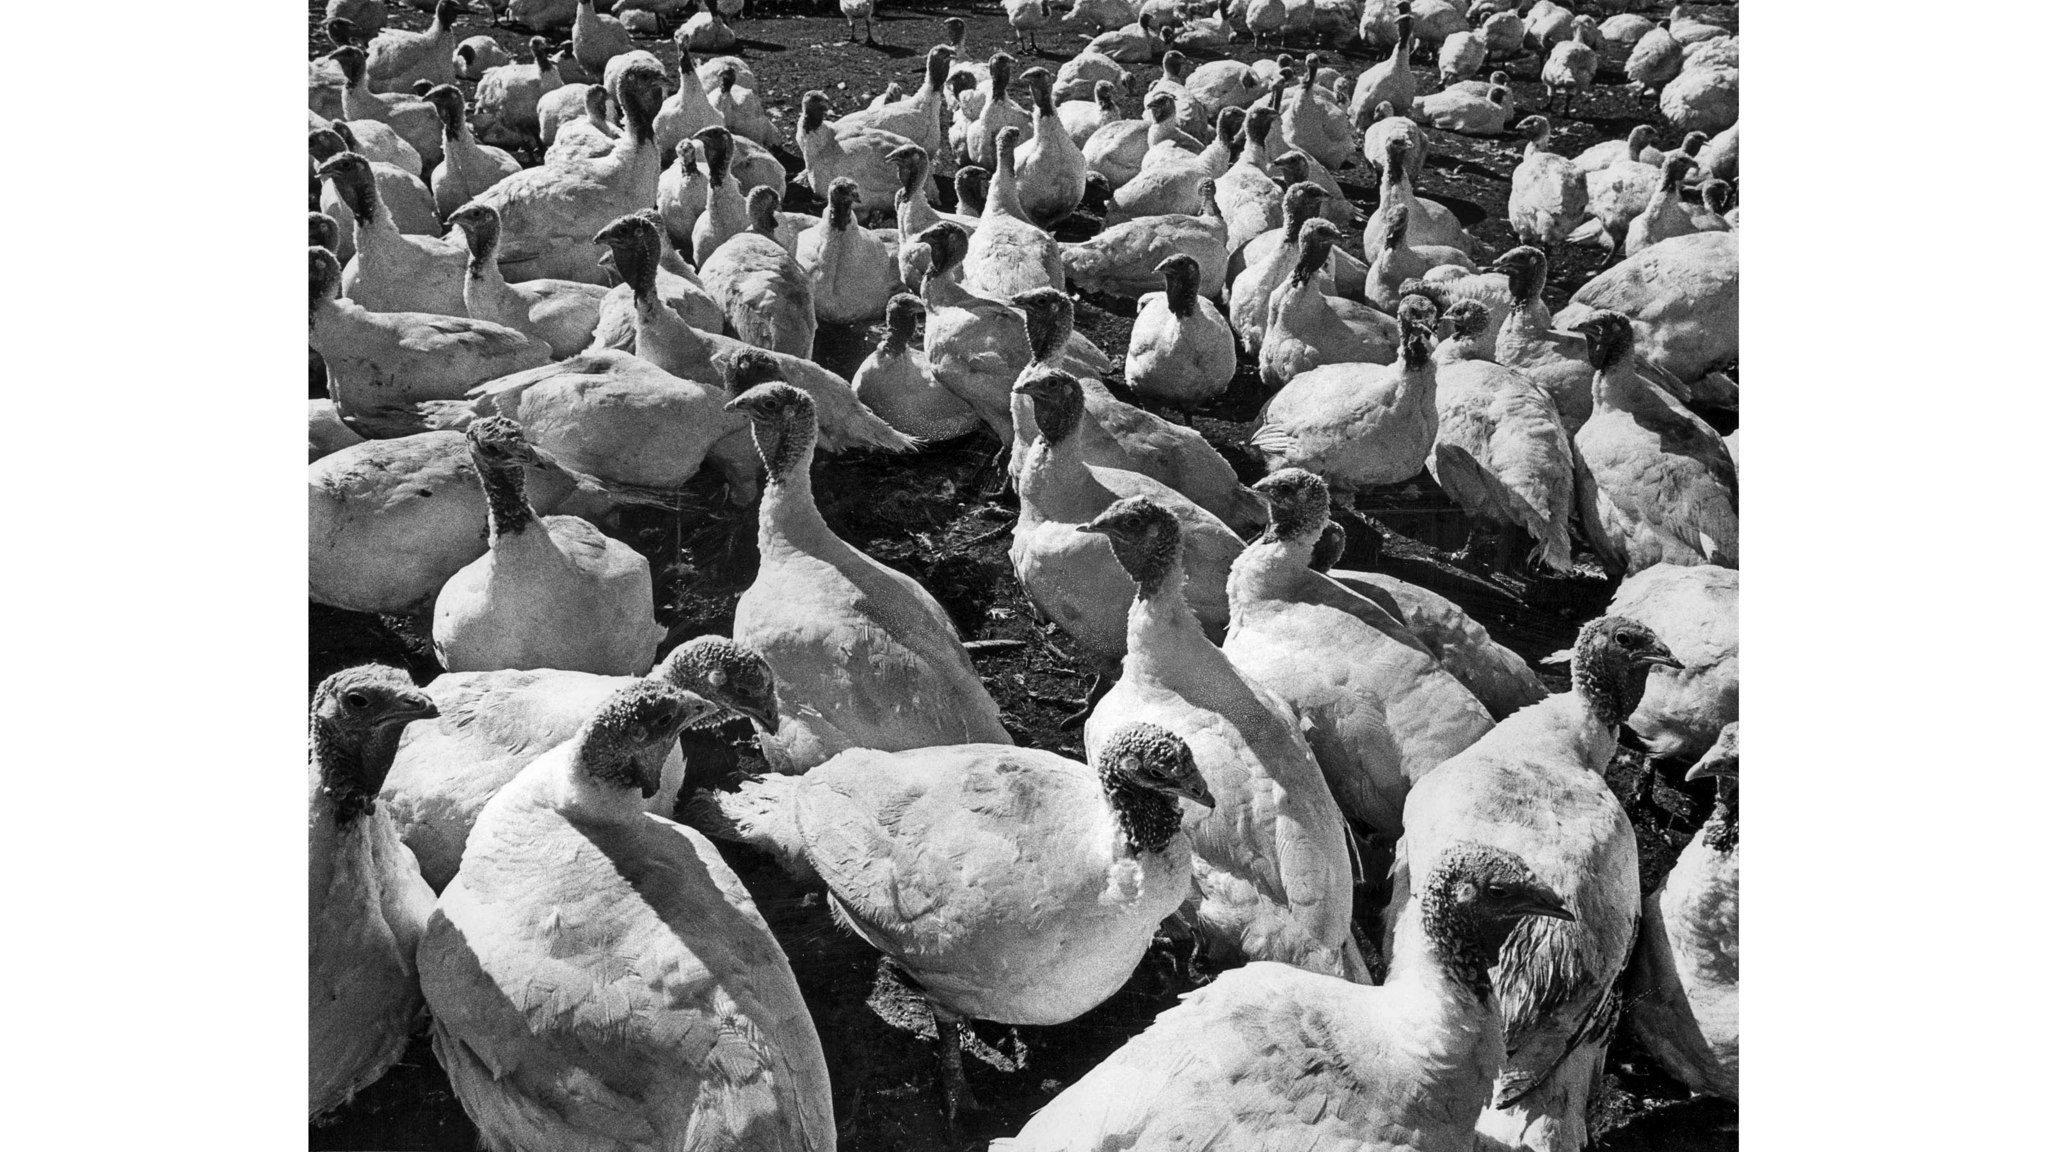 Nov. 2, 1978: Turkeys at the Schaefer's BBB Turkey Ranch in Chino. This photo was published in the N